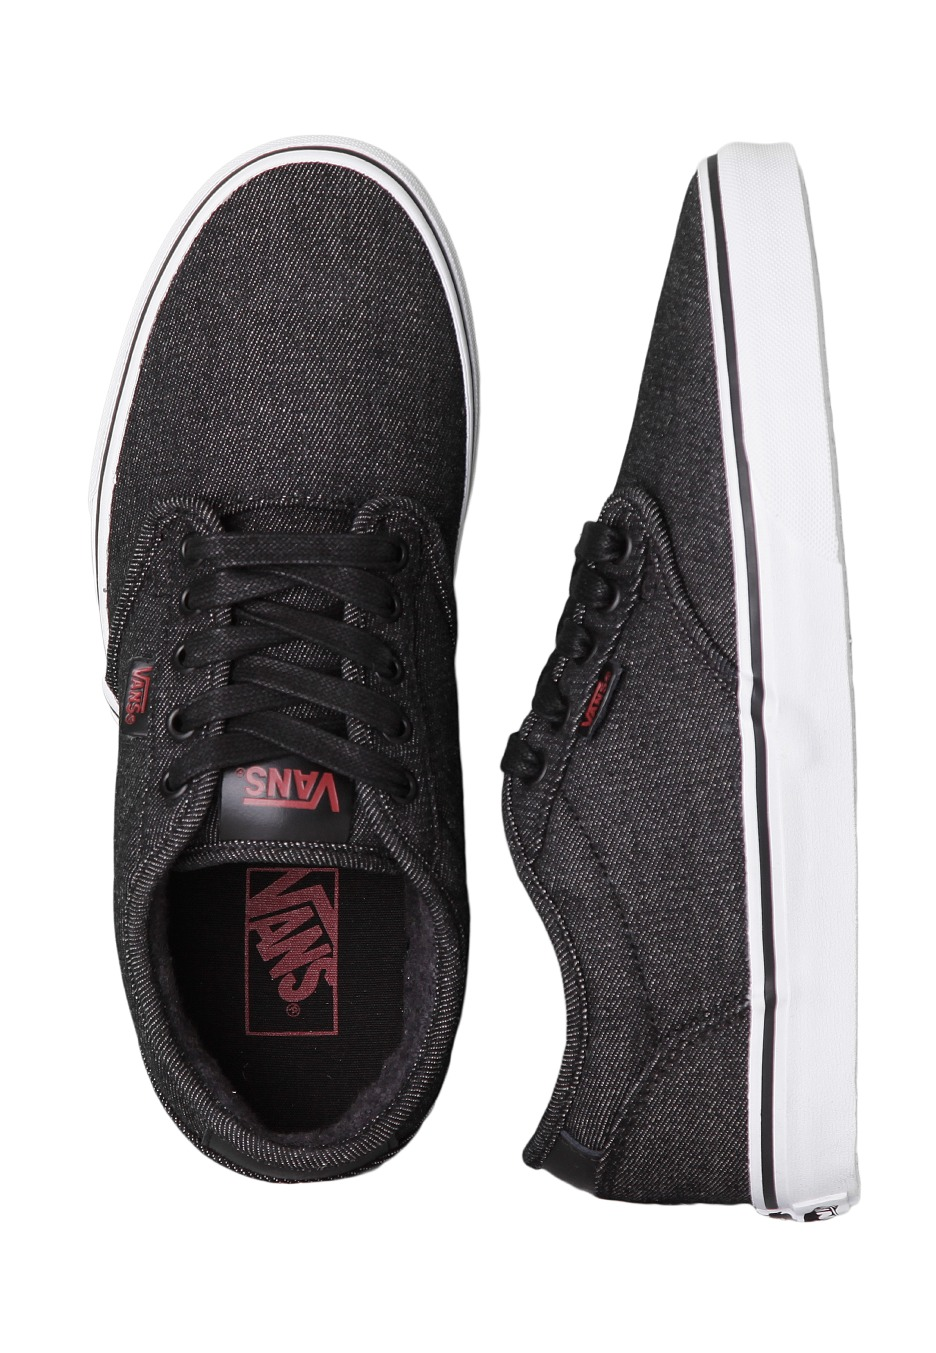 Vans - Atwood Deluxe Twill Black Black - Shoes - Impericon.com Worldwide a1b172528